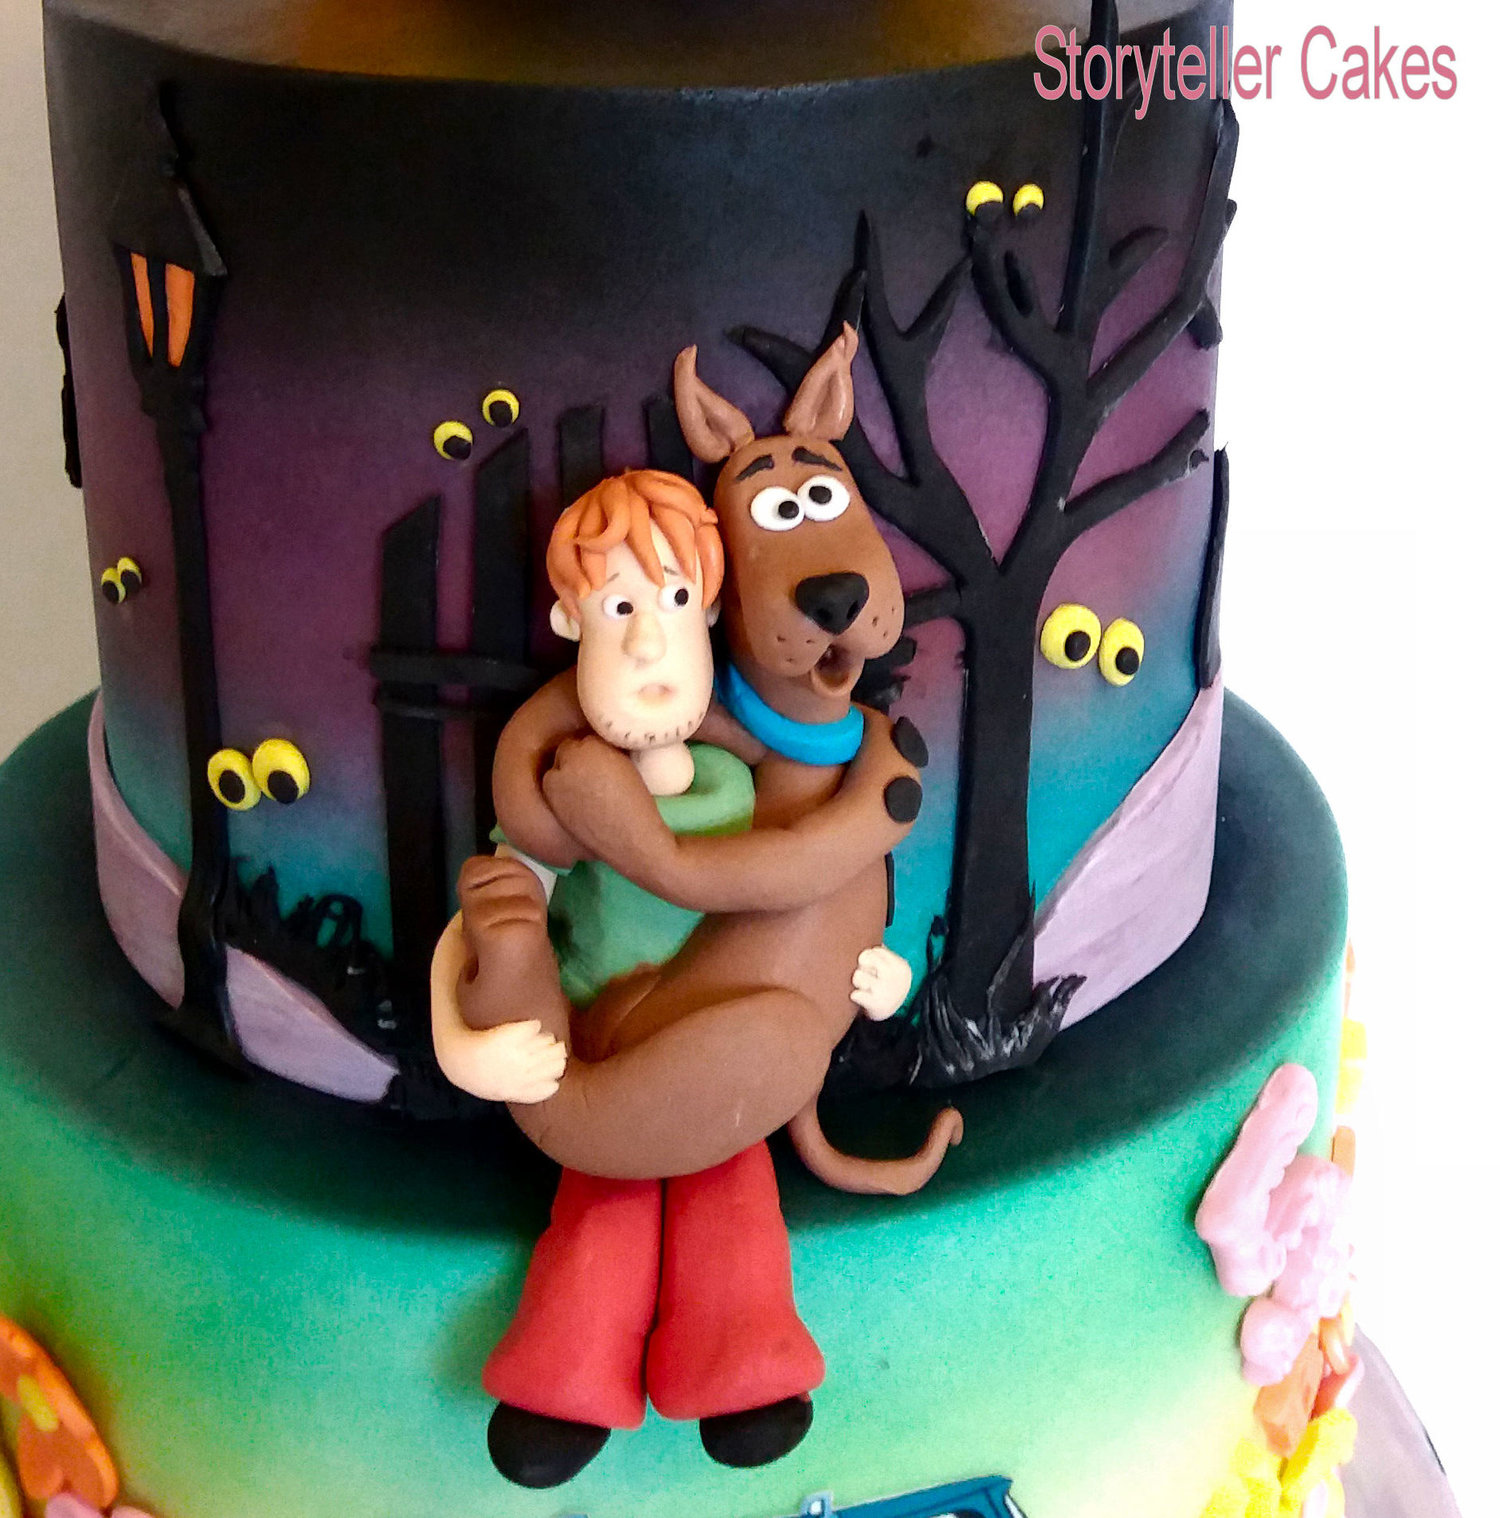 Childrens Birthday Cakes Boys Storyteller Cakes